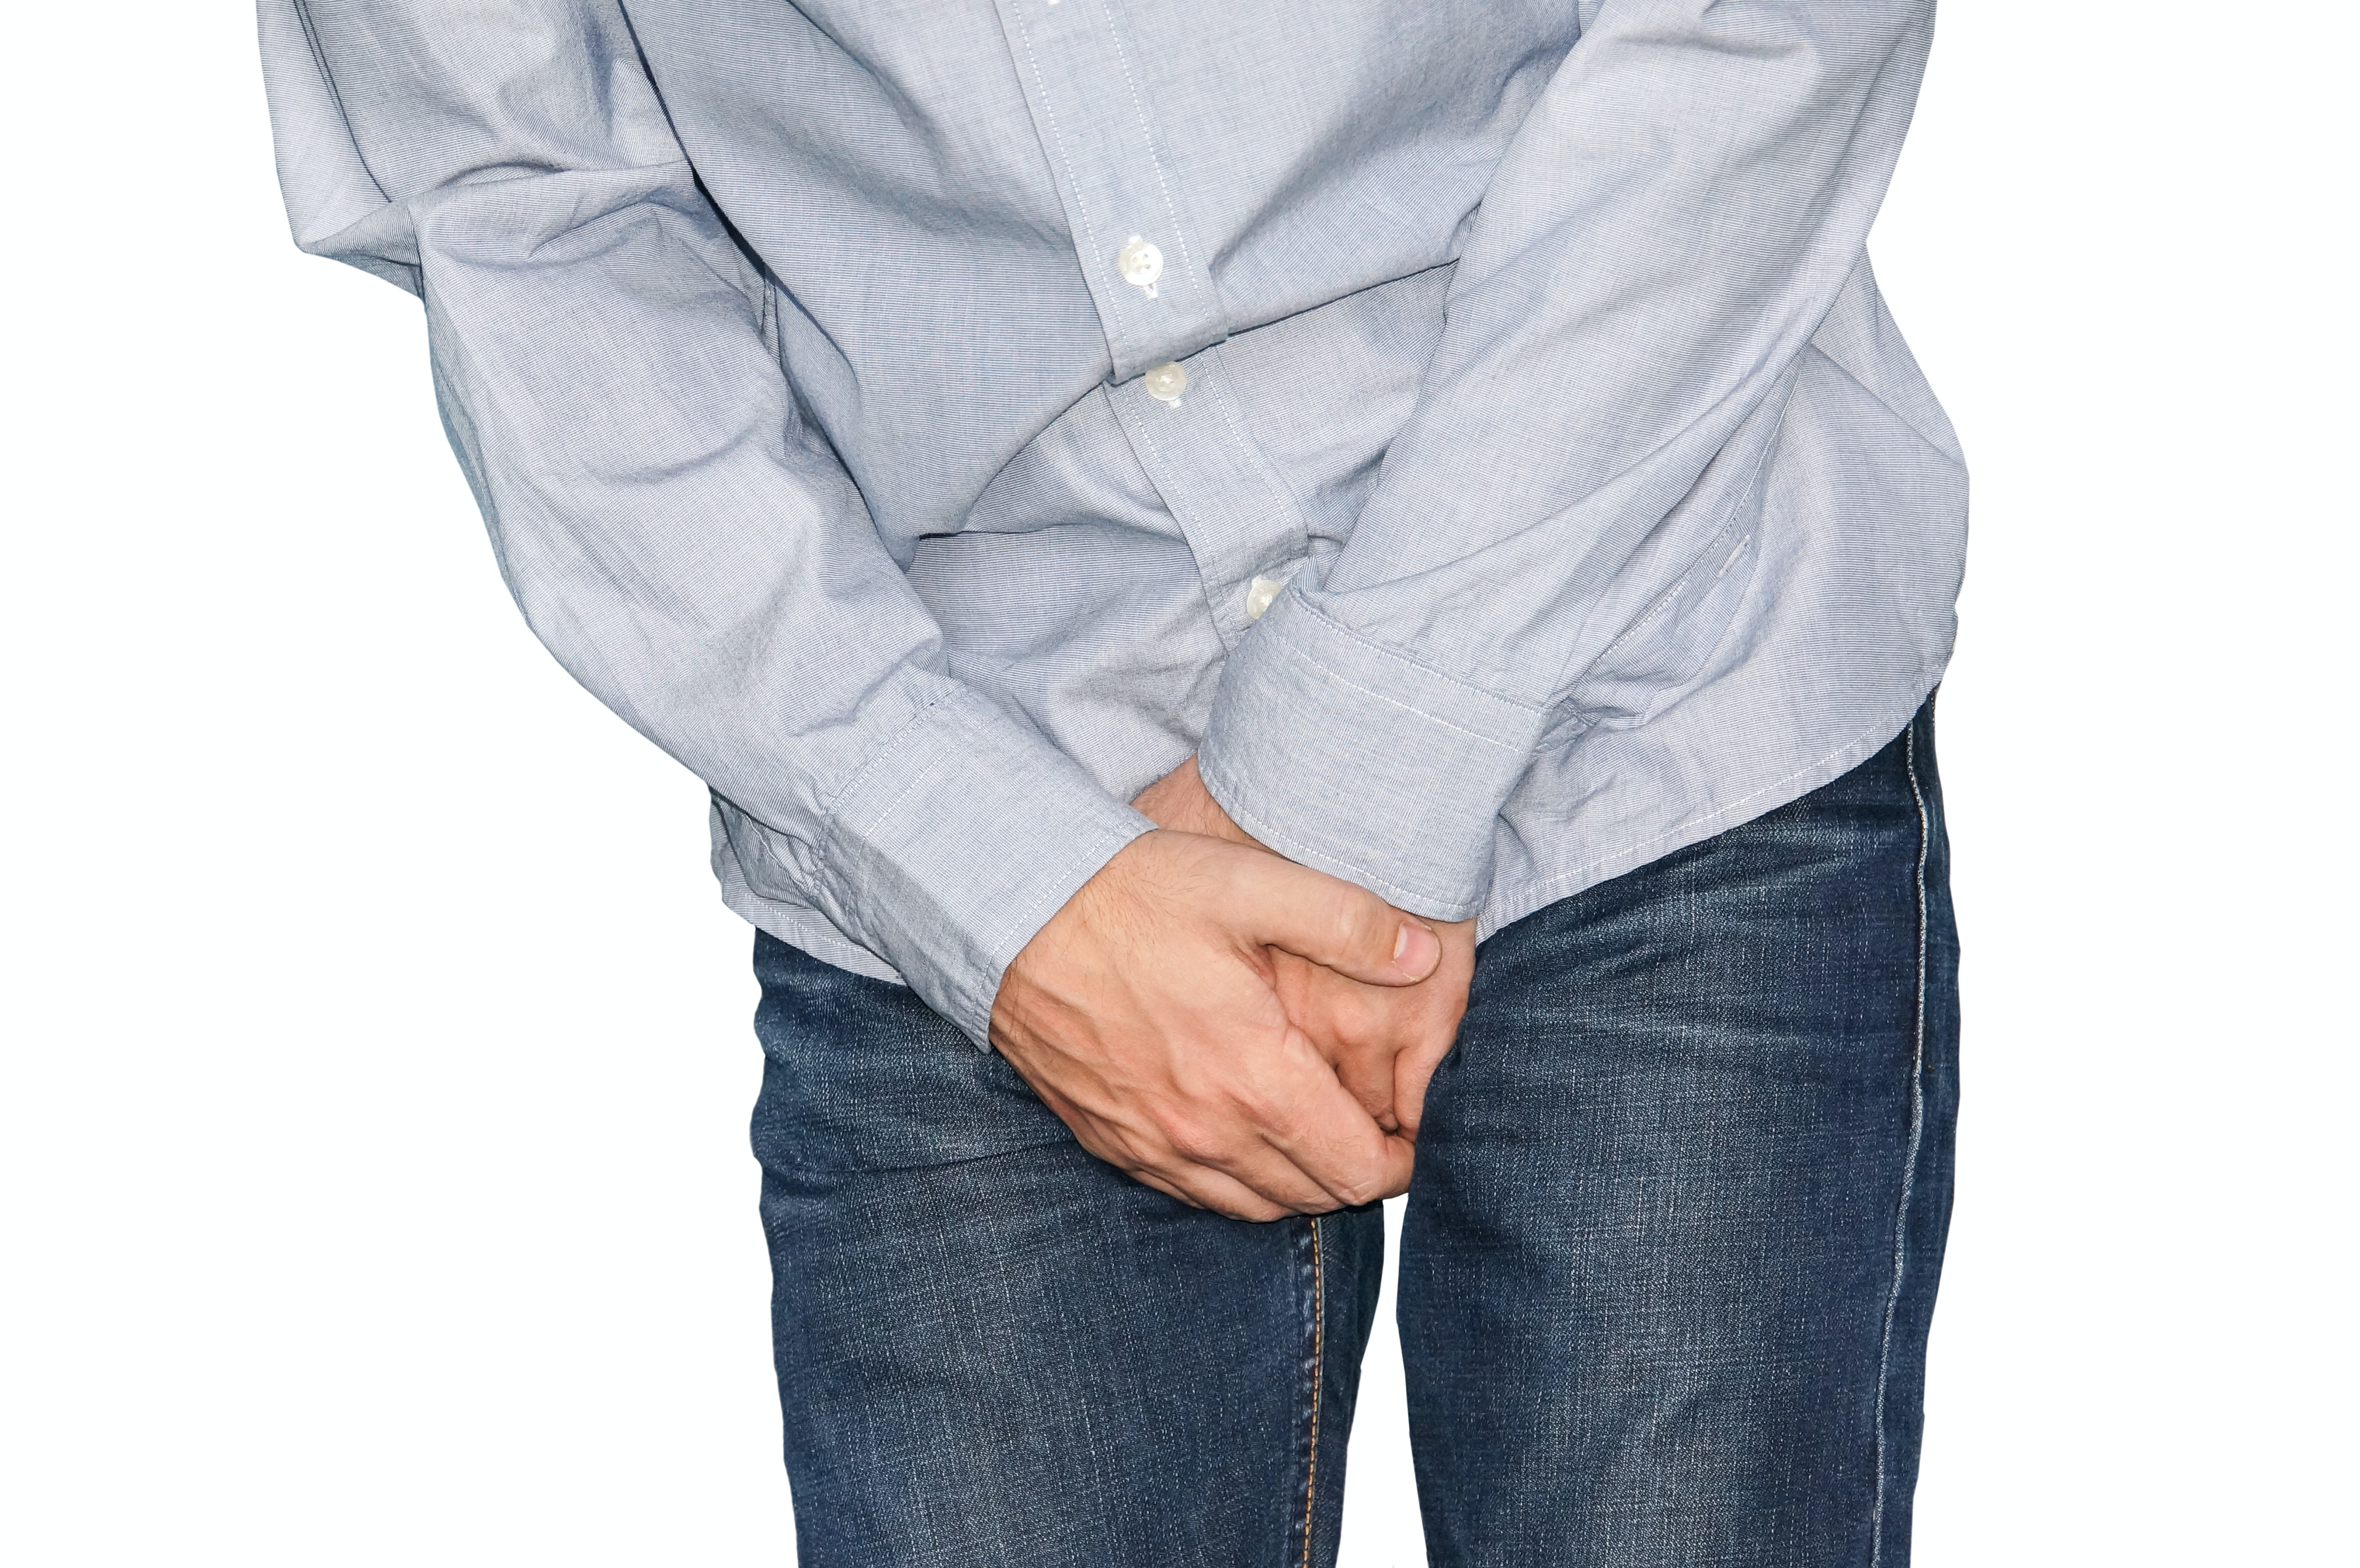 An image depicting a person suffering from painful erection symptoms